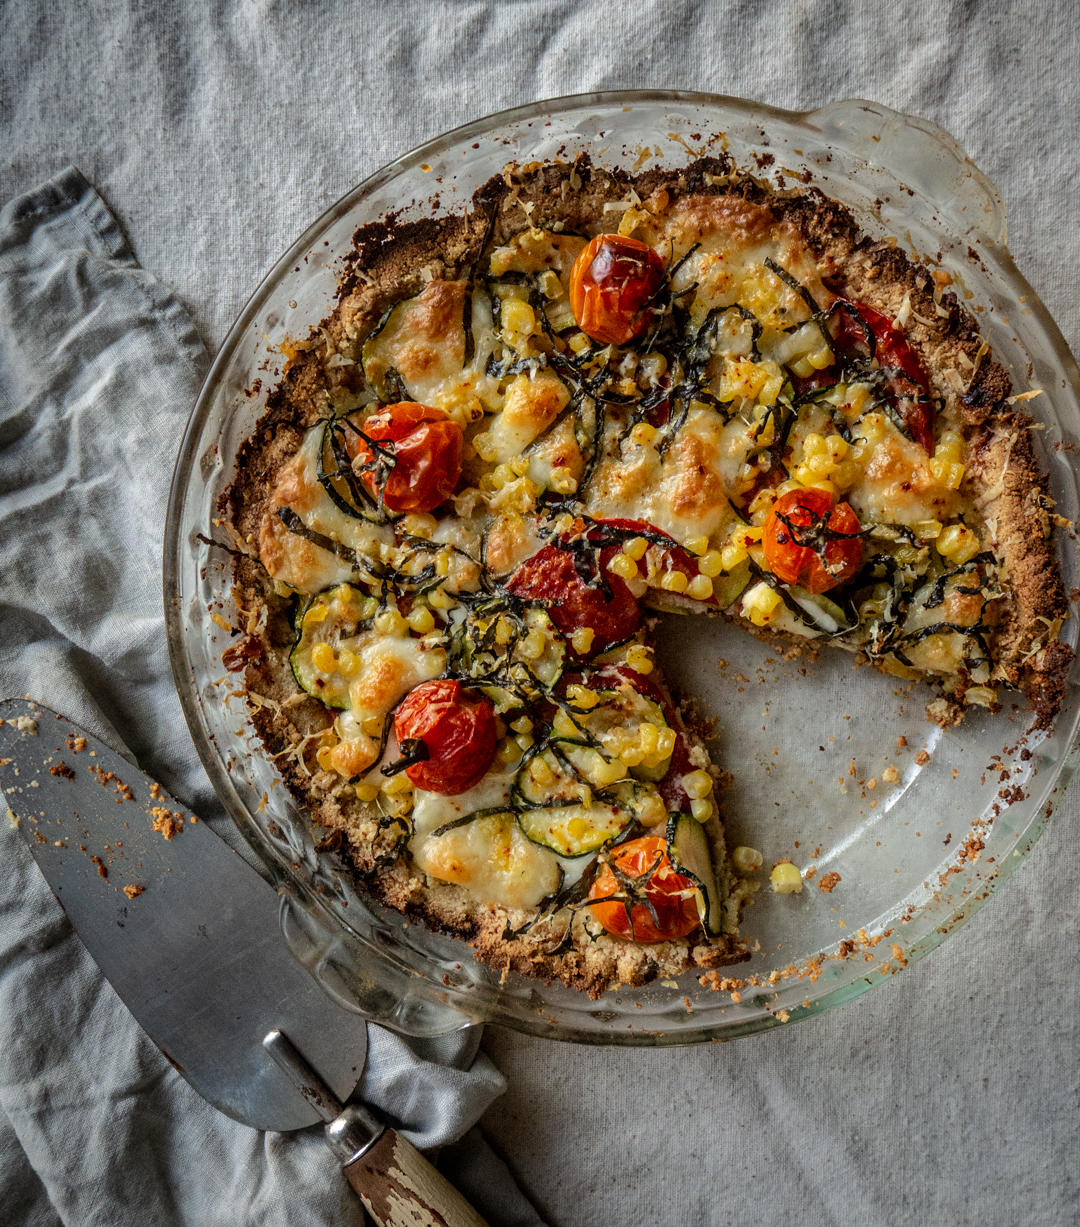 Tomato, Zucchini and Corn Pie with Almond Flour Crust